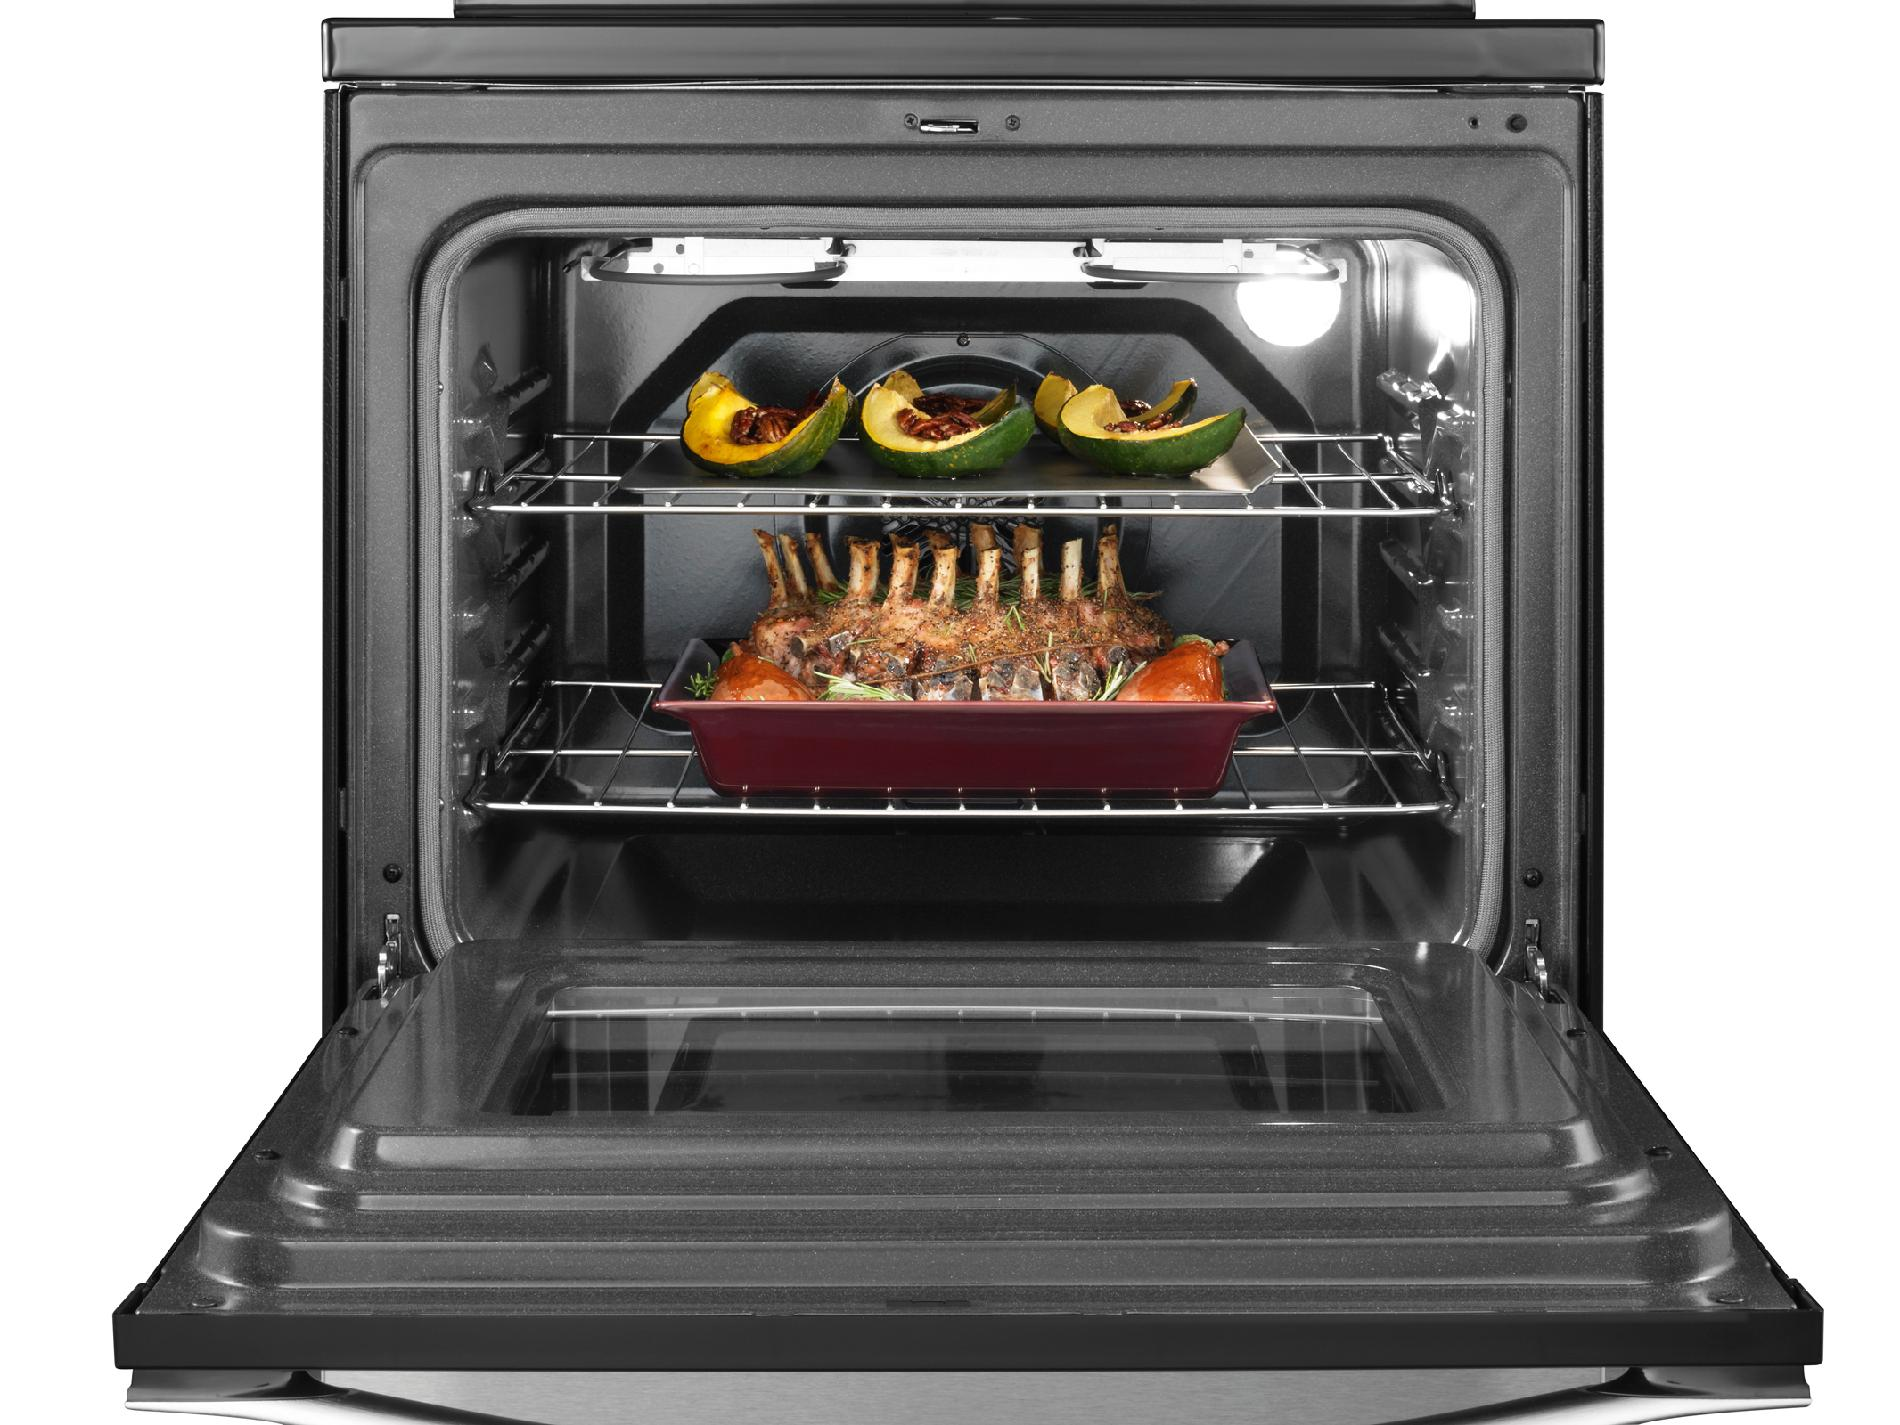 Whirlpool 5.3 cu. ft. Electric Range w/ TimeSavor™ Convection Cooking - Stainless Steel